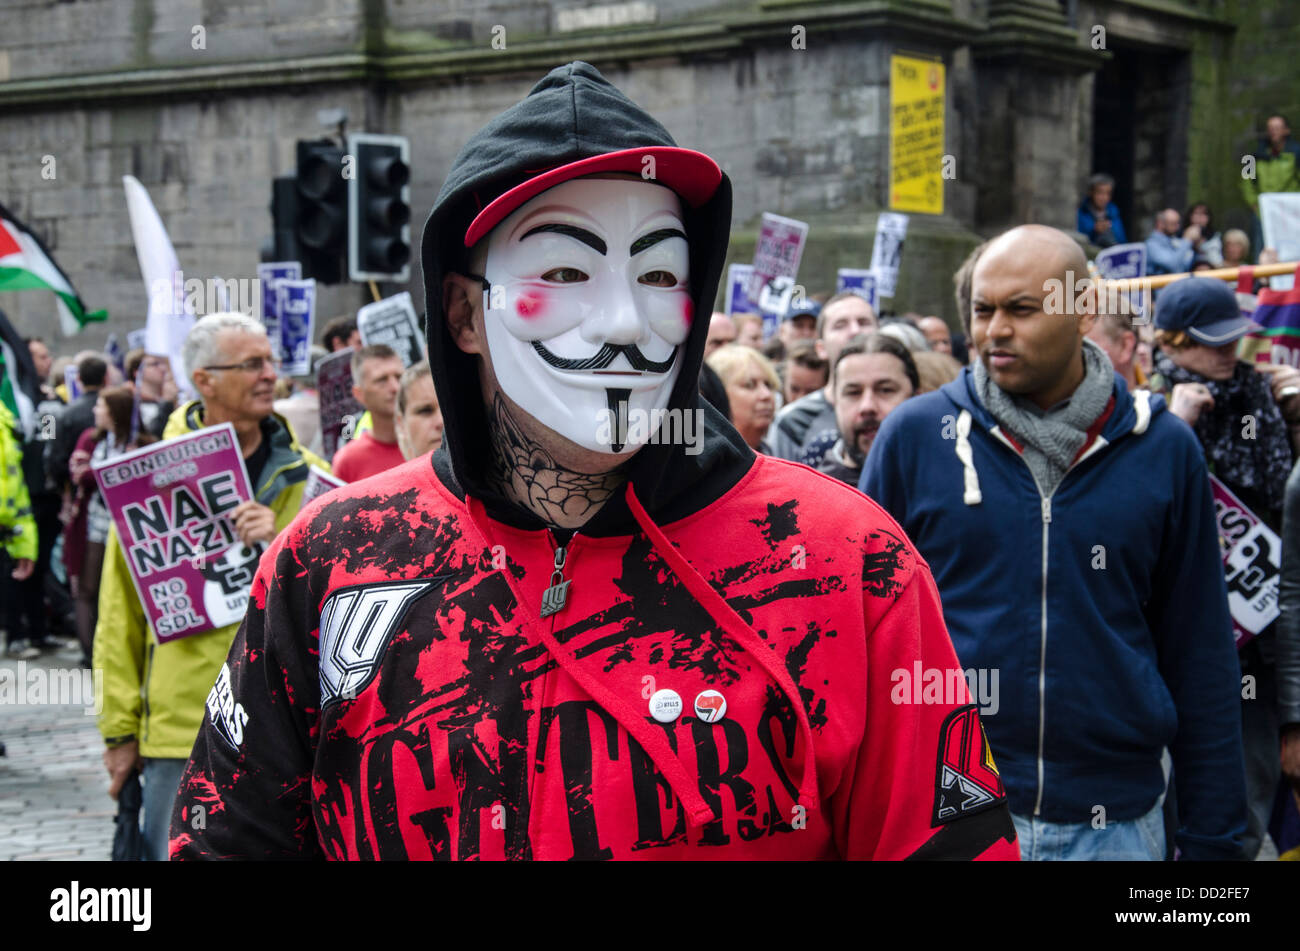 Anti-fascist protester wearing an Anonymous mask in Edinburgh's Old Town. - Stock Image